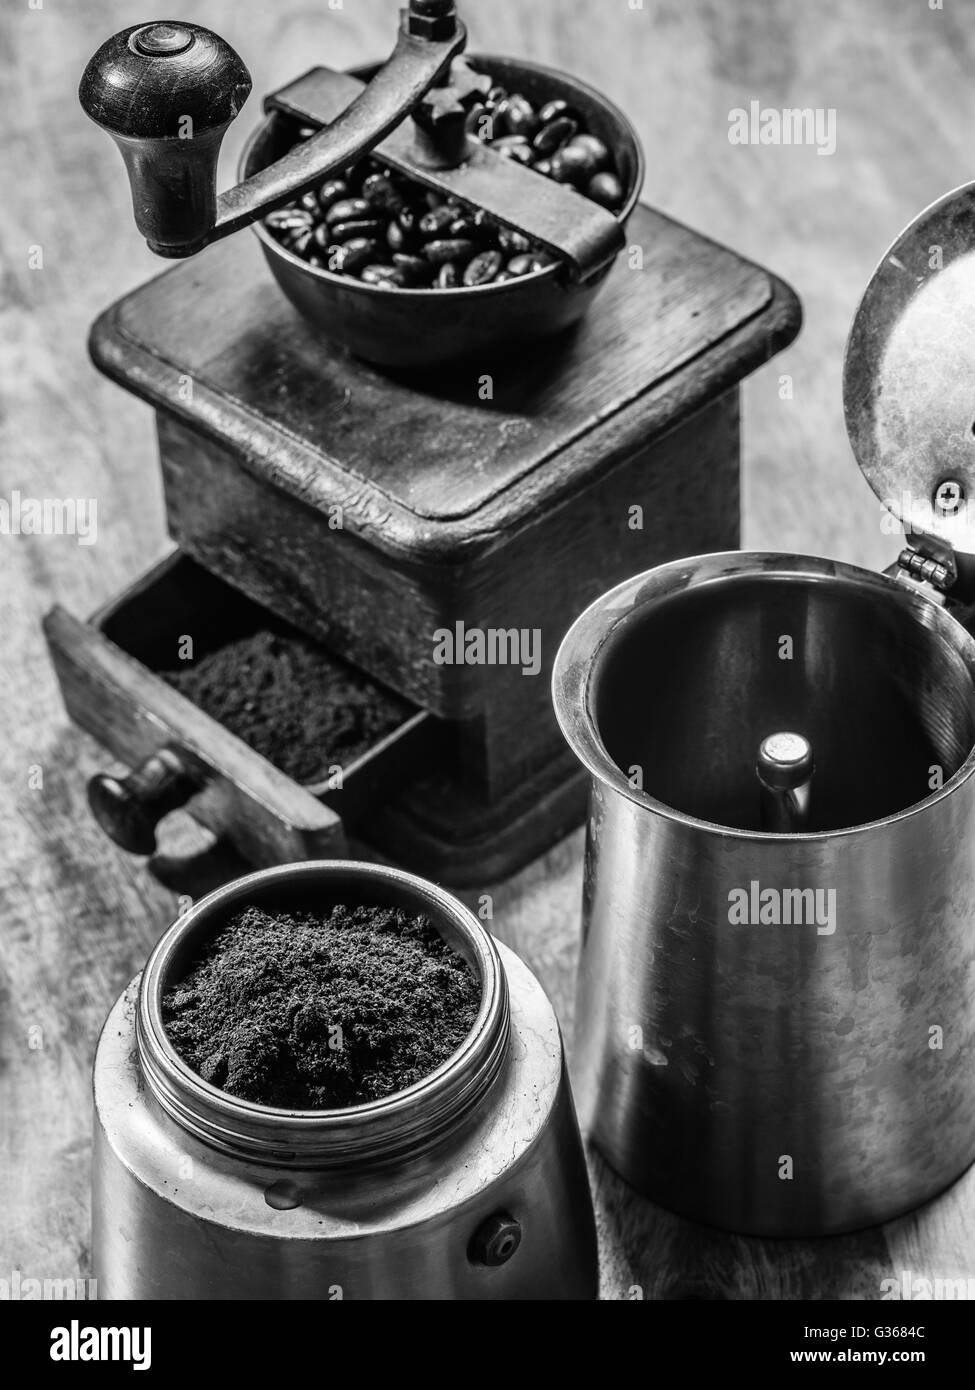 Photo of an Italian Moka Express stovetop coffee maker and a coffee grinder done in black and white. - Stock Image